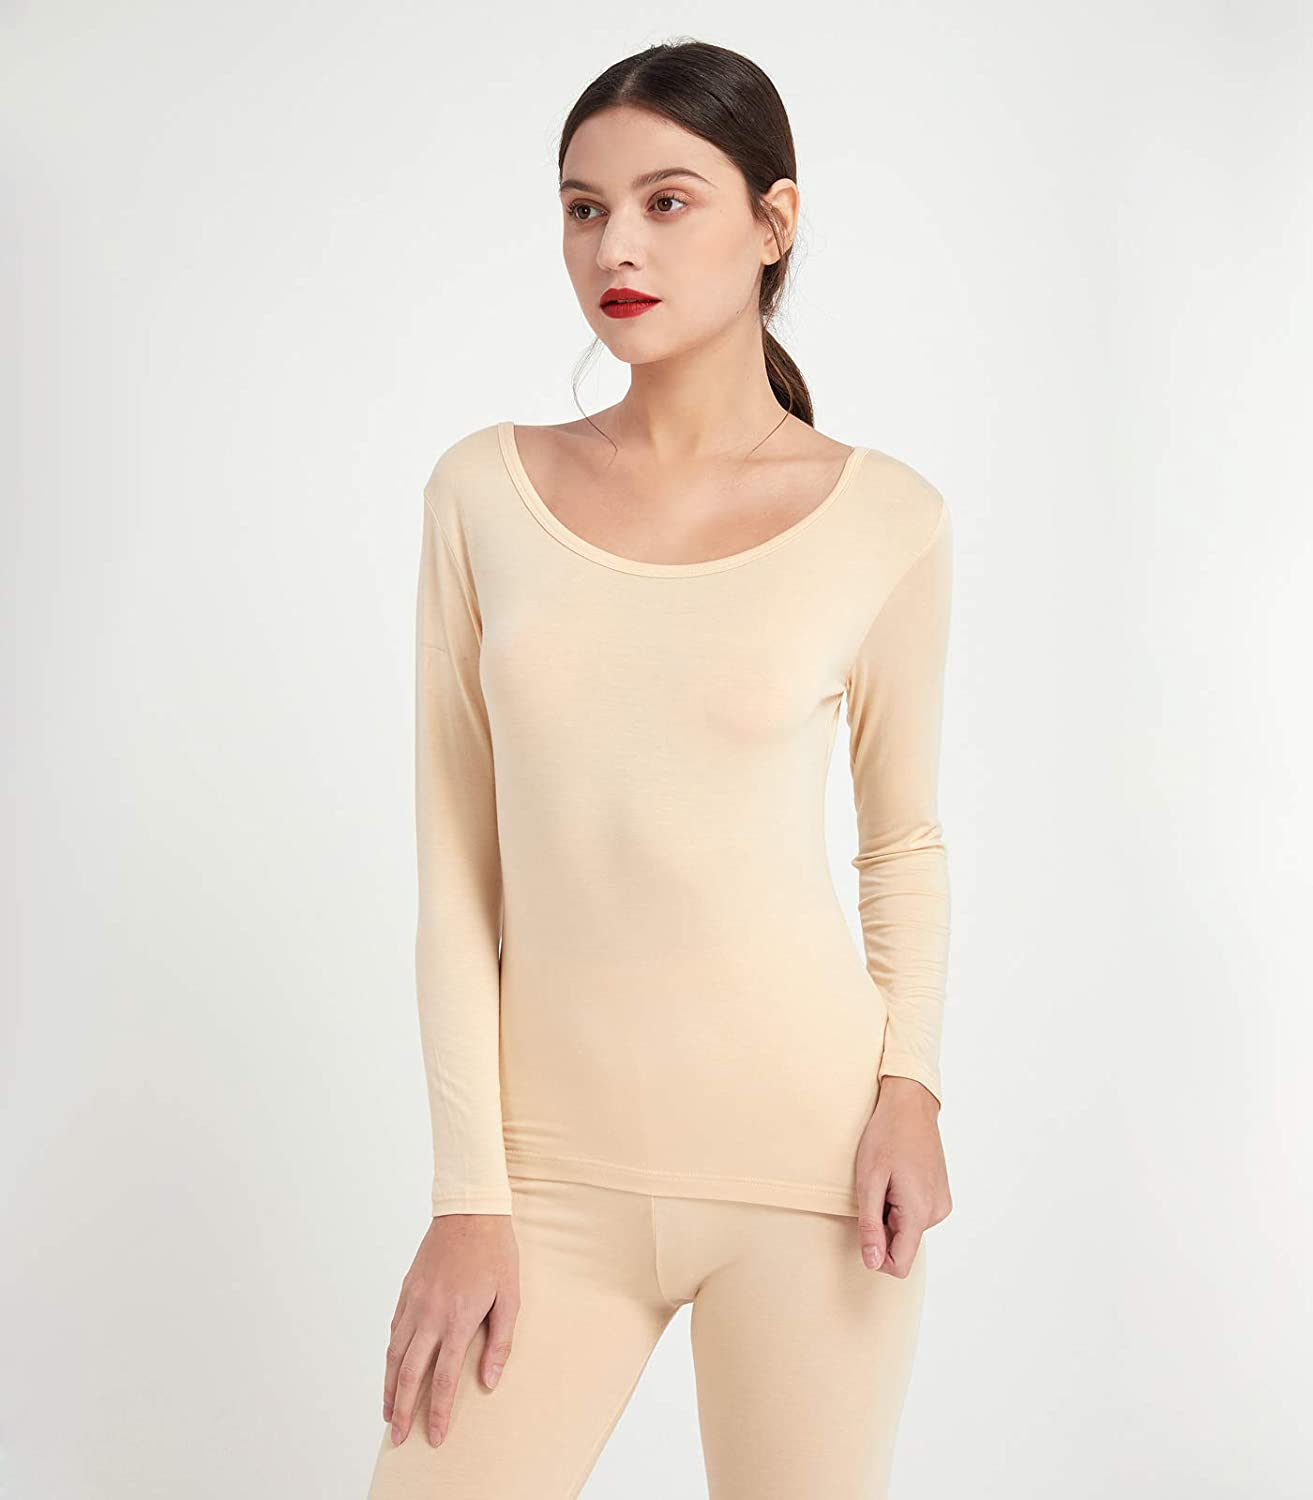 Mcilia Womens Cotton /& Modal Scoop Neckline Base Layer Thin Thermal Long Sleeve Top